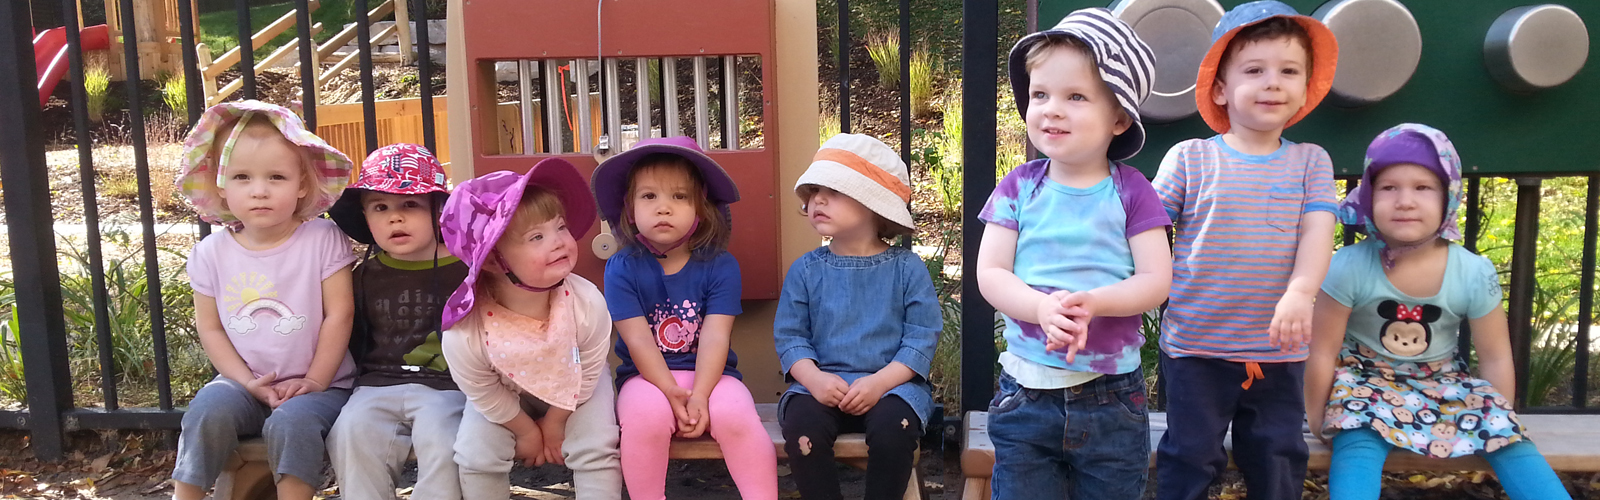 Six children wearing hats sitting on outdoor play equipment.